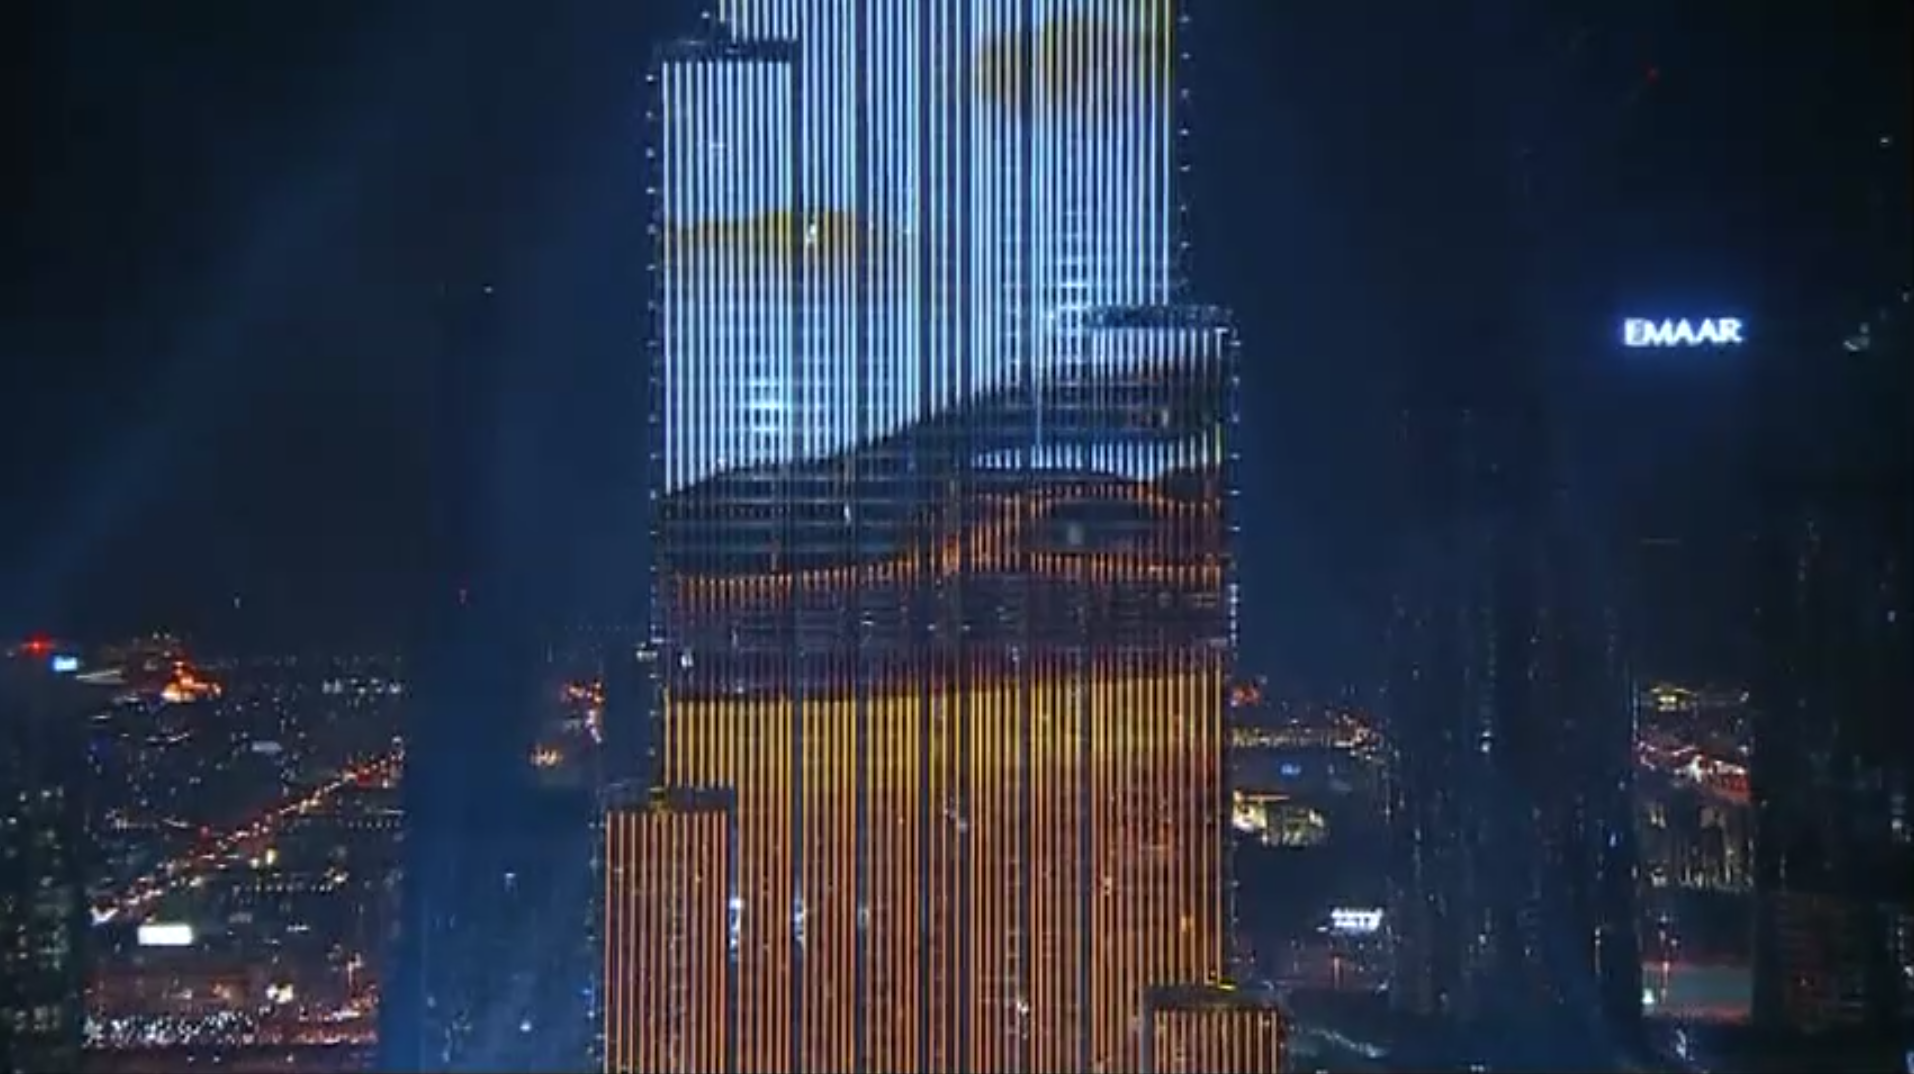 LIVE: Watch Dubai's record breaking New Year's Eve celebrations (CNN Newsource)